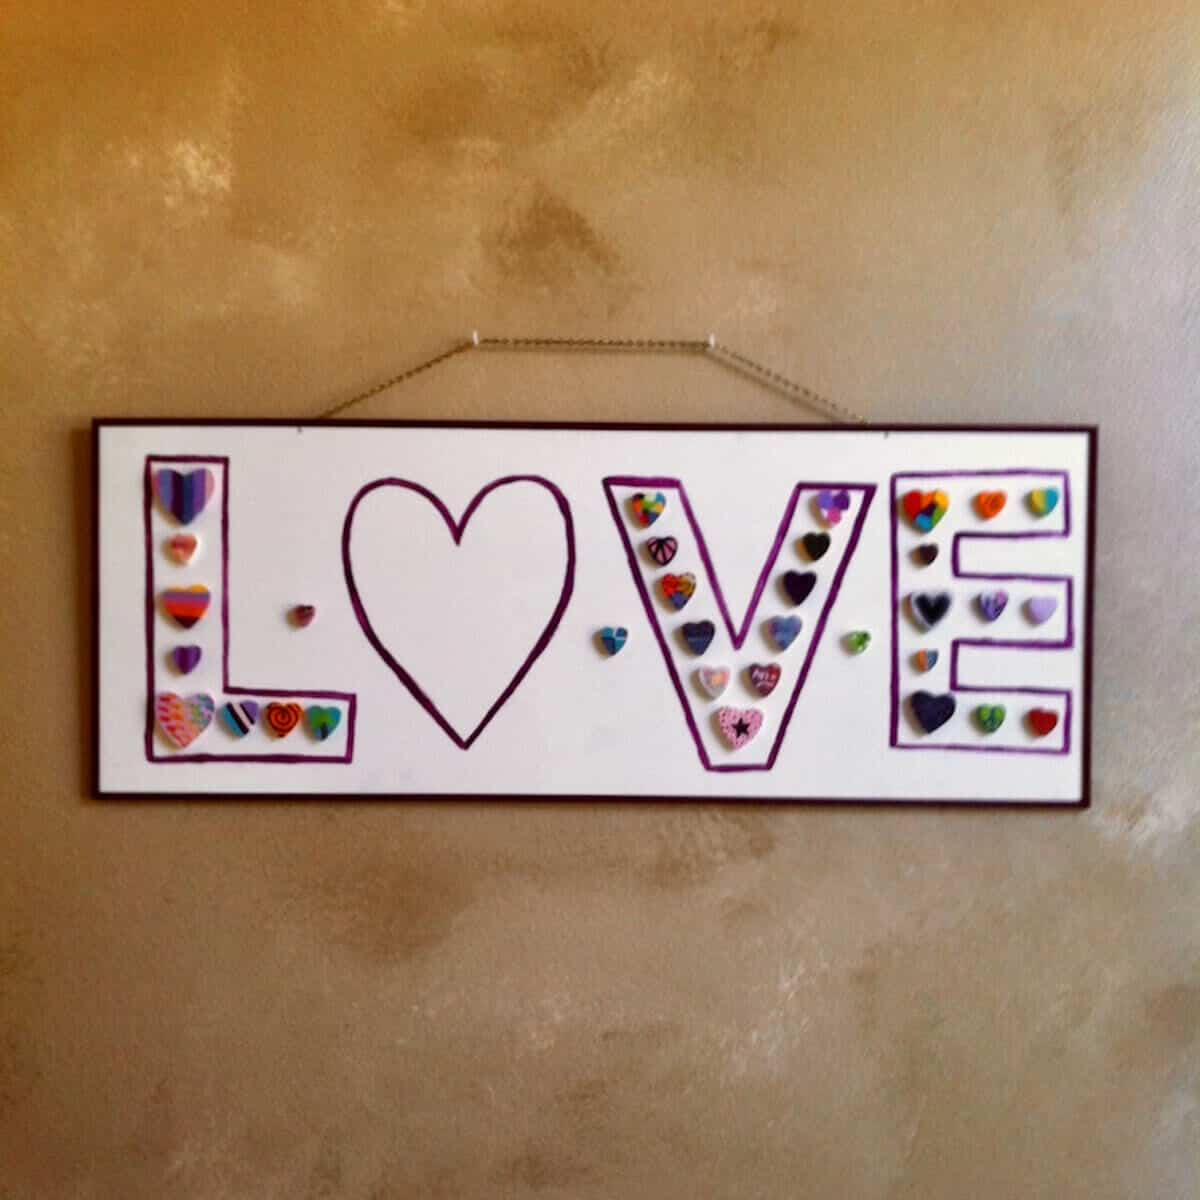 A handpainted sign saying Love hanging on a wall.